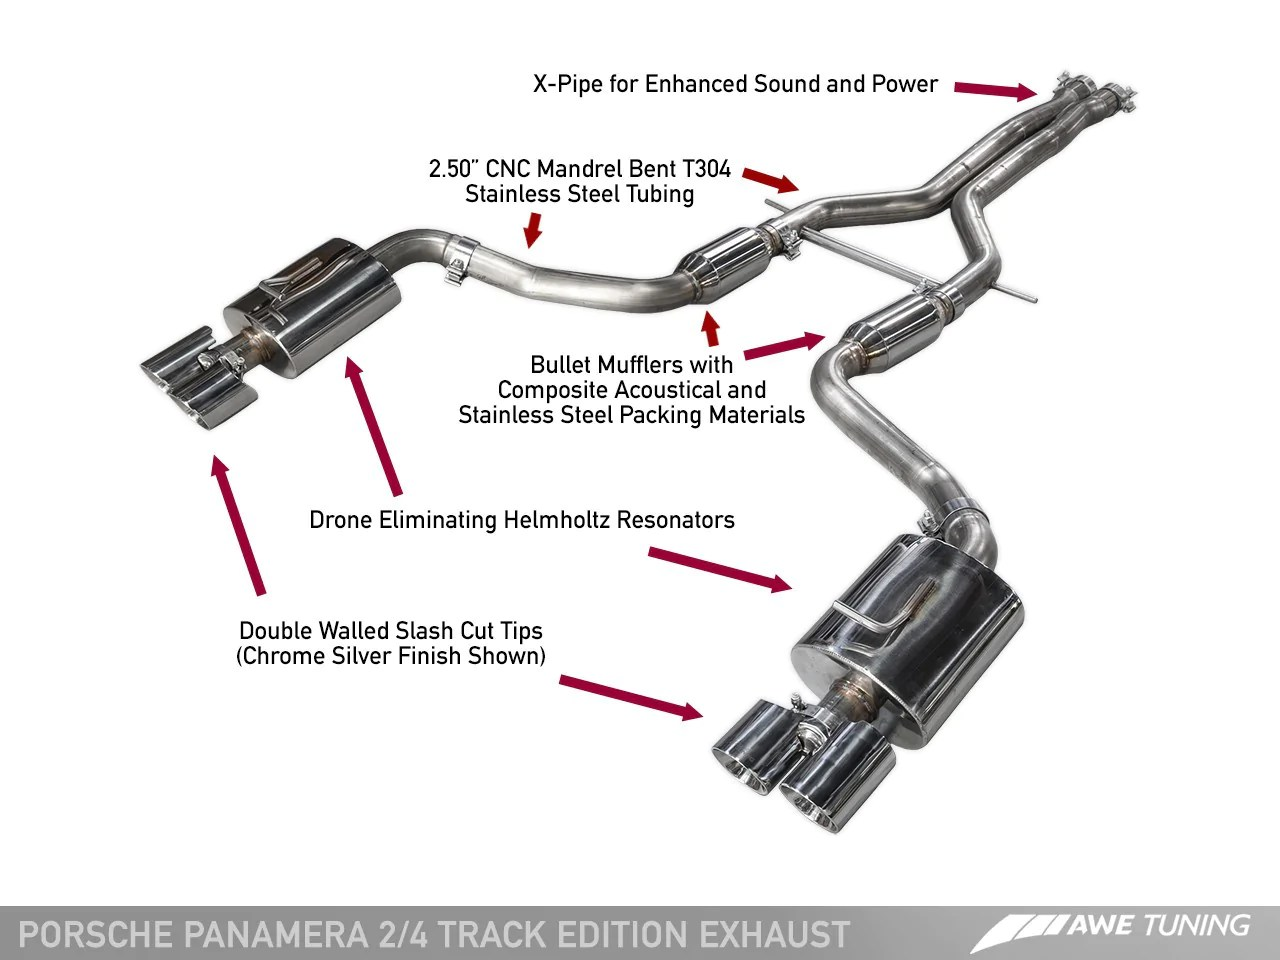 370z Aftermarket Wiring Diagram For Awe Tuning Exhaust System Panamera V6 Flat 6